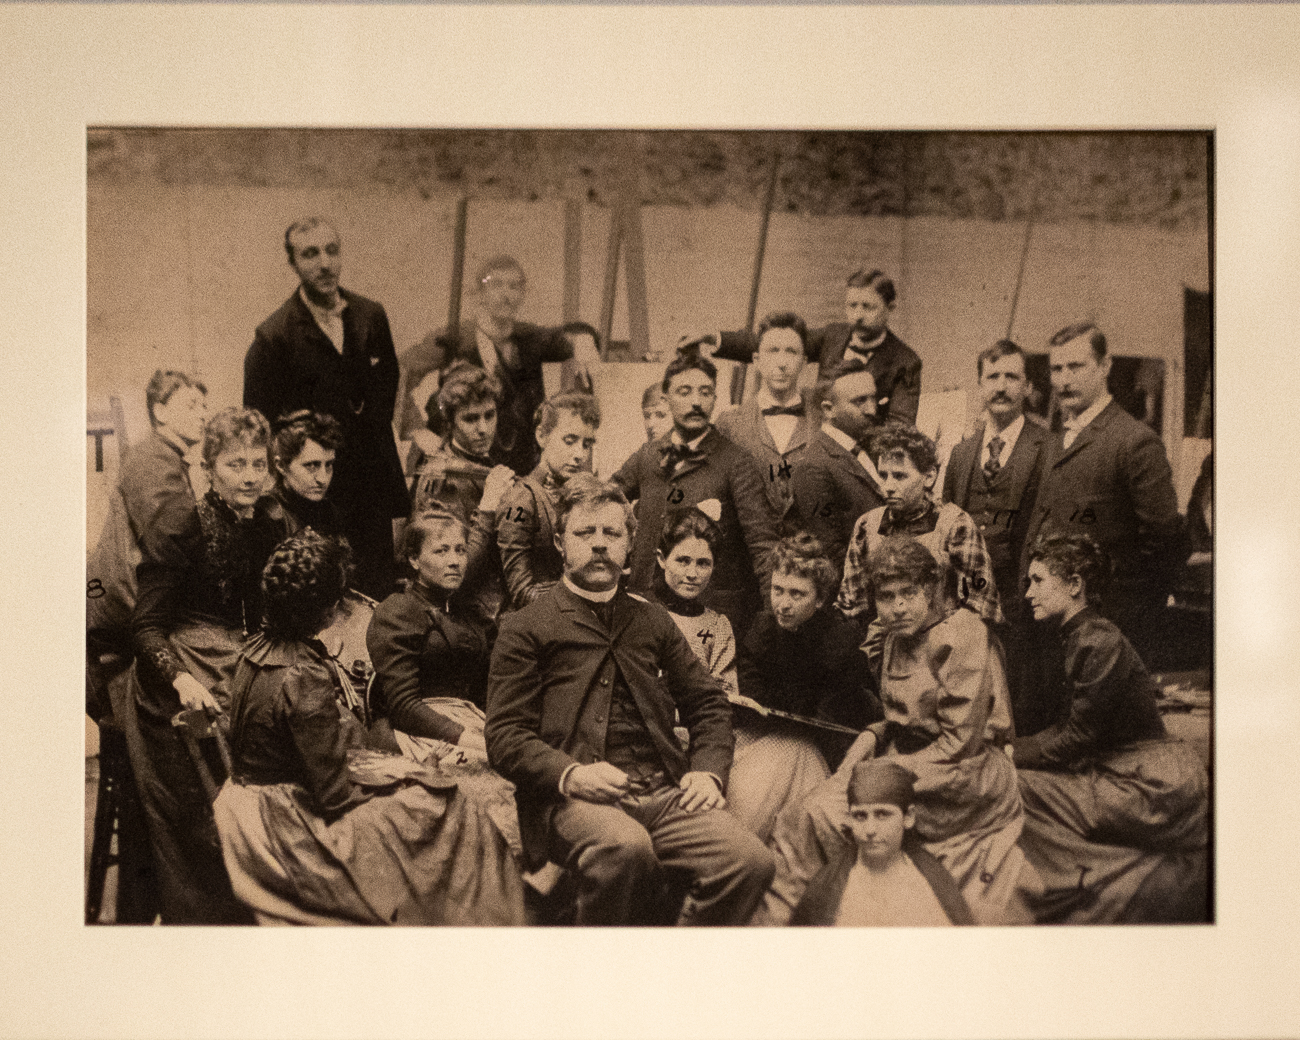 Also in the collection are rare photographs of Duveneck and those in his life. The artist had a studio on the third floor of the Art Museum and taught students there. This is a photo of his class around 1890-91. / Image: Phil Armstrong, Cincinnati Refined // Published: 12.19.20